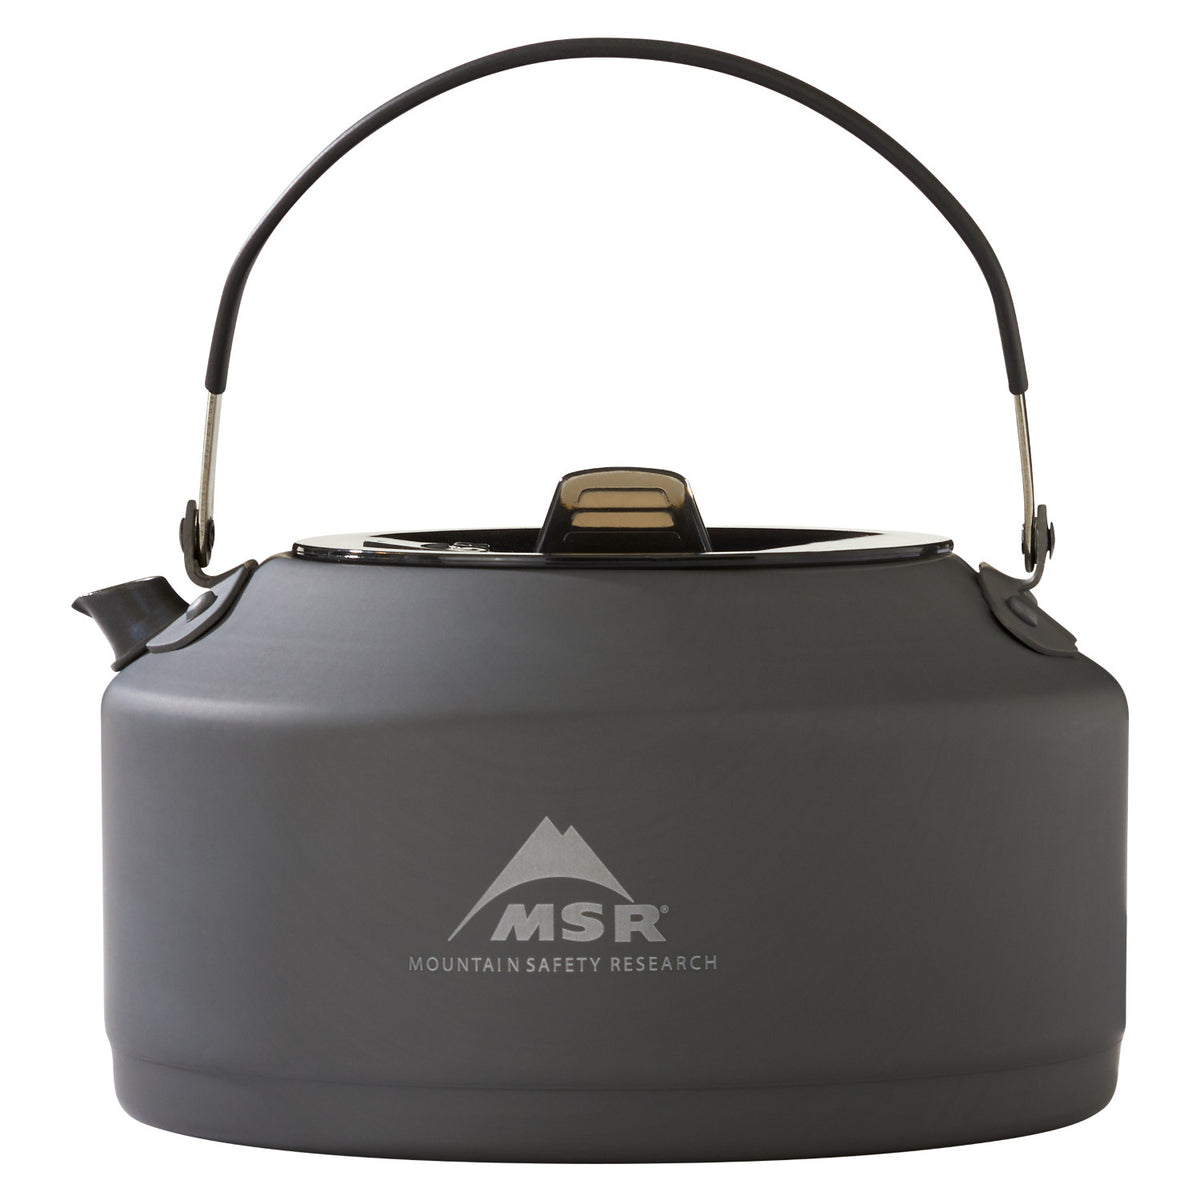 MSR Pika 1.0L Teapot, in dark grey colour with the handle upright